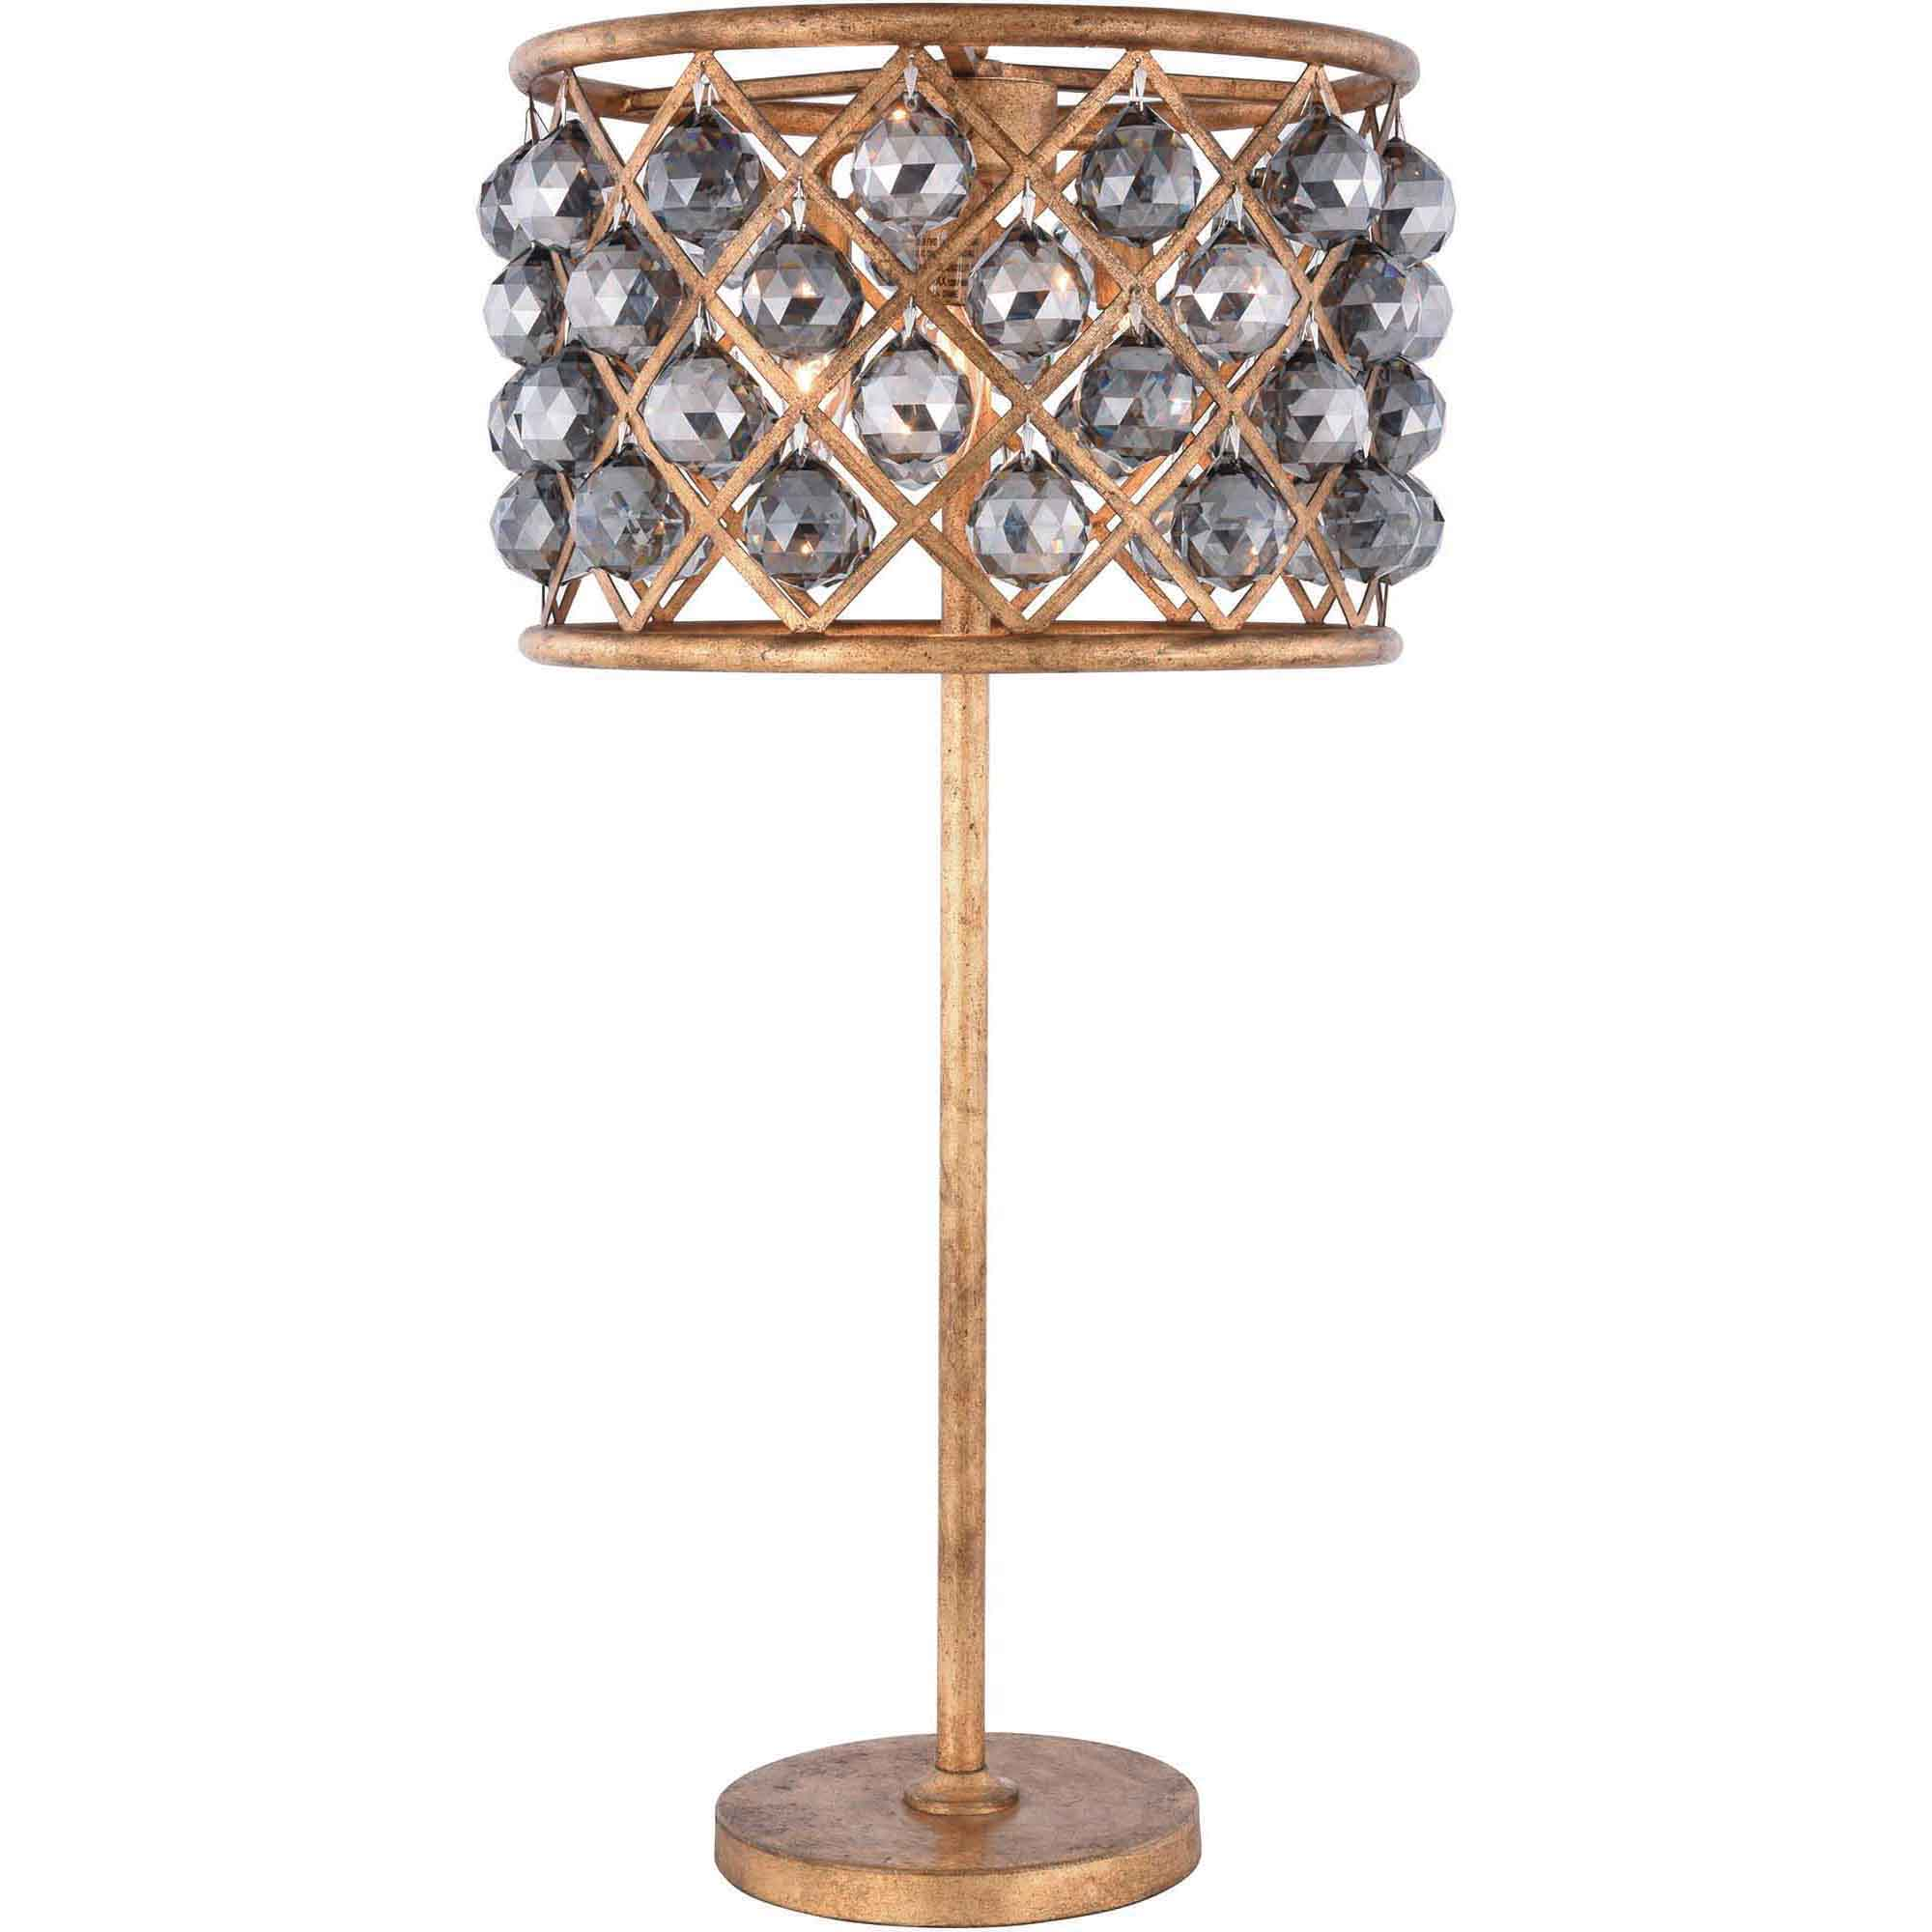 "Madison Collection Table Lamp D:15.5"" H:32"" Lt:3 Golden Iron Finish Royal Cut Silver Shade (Grey)"